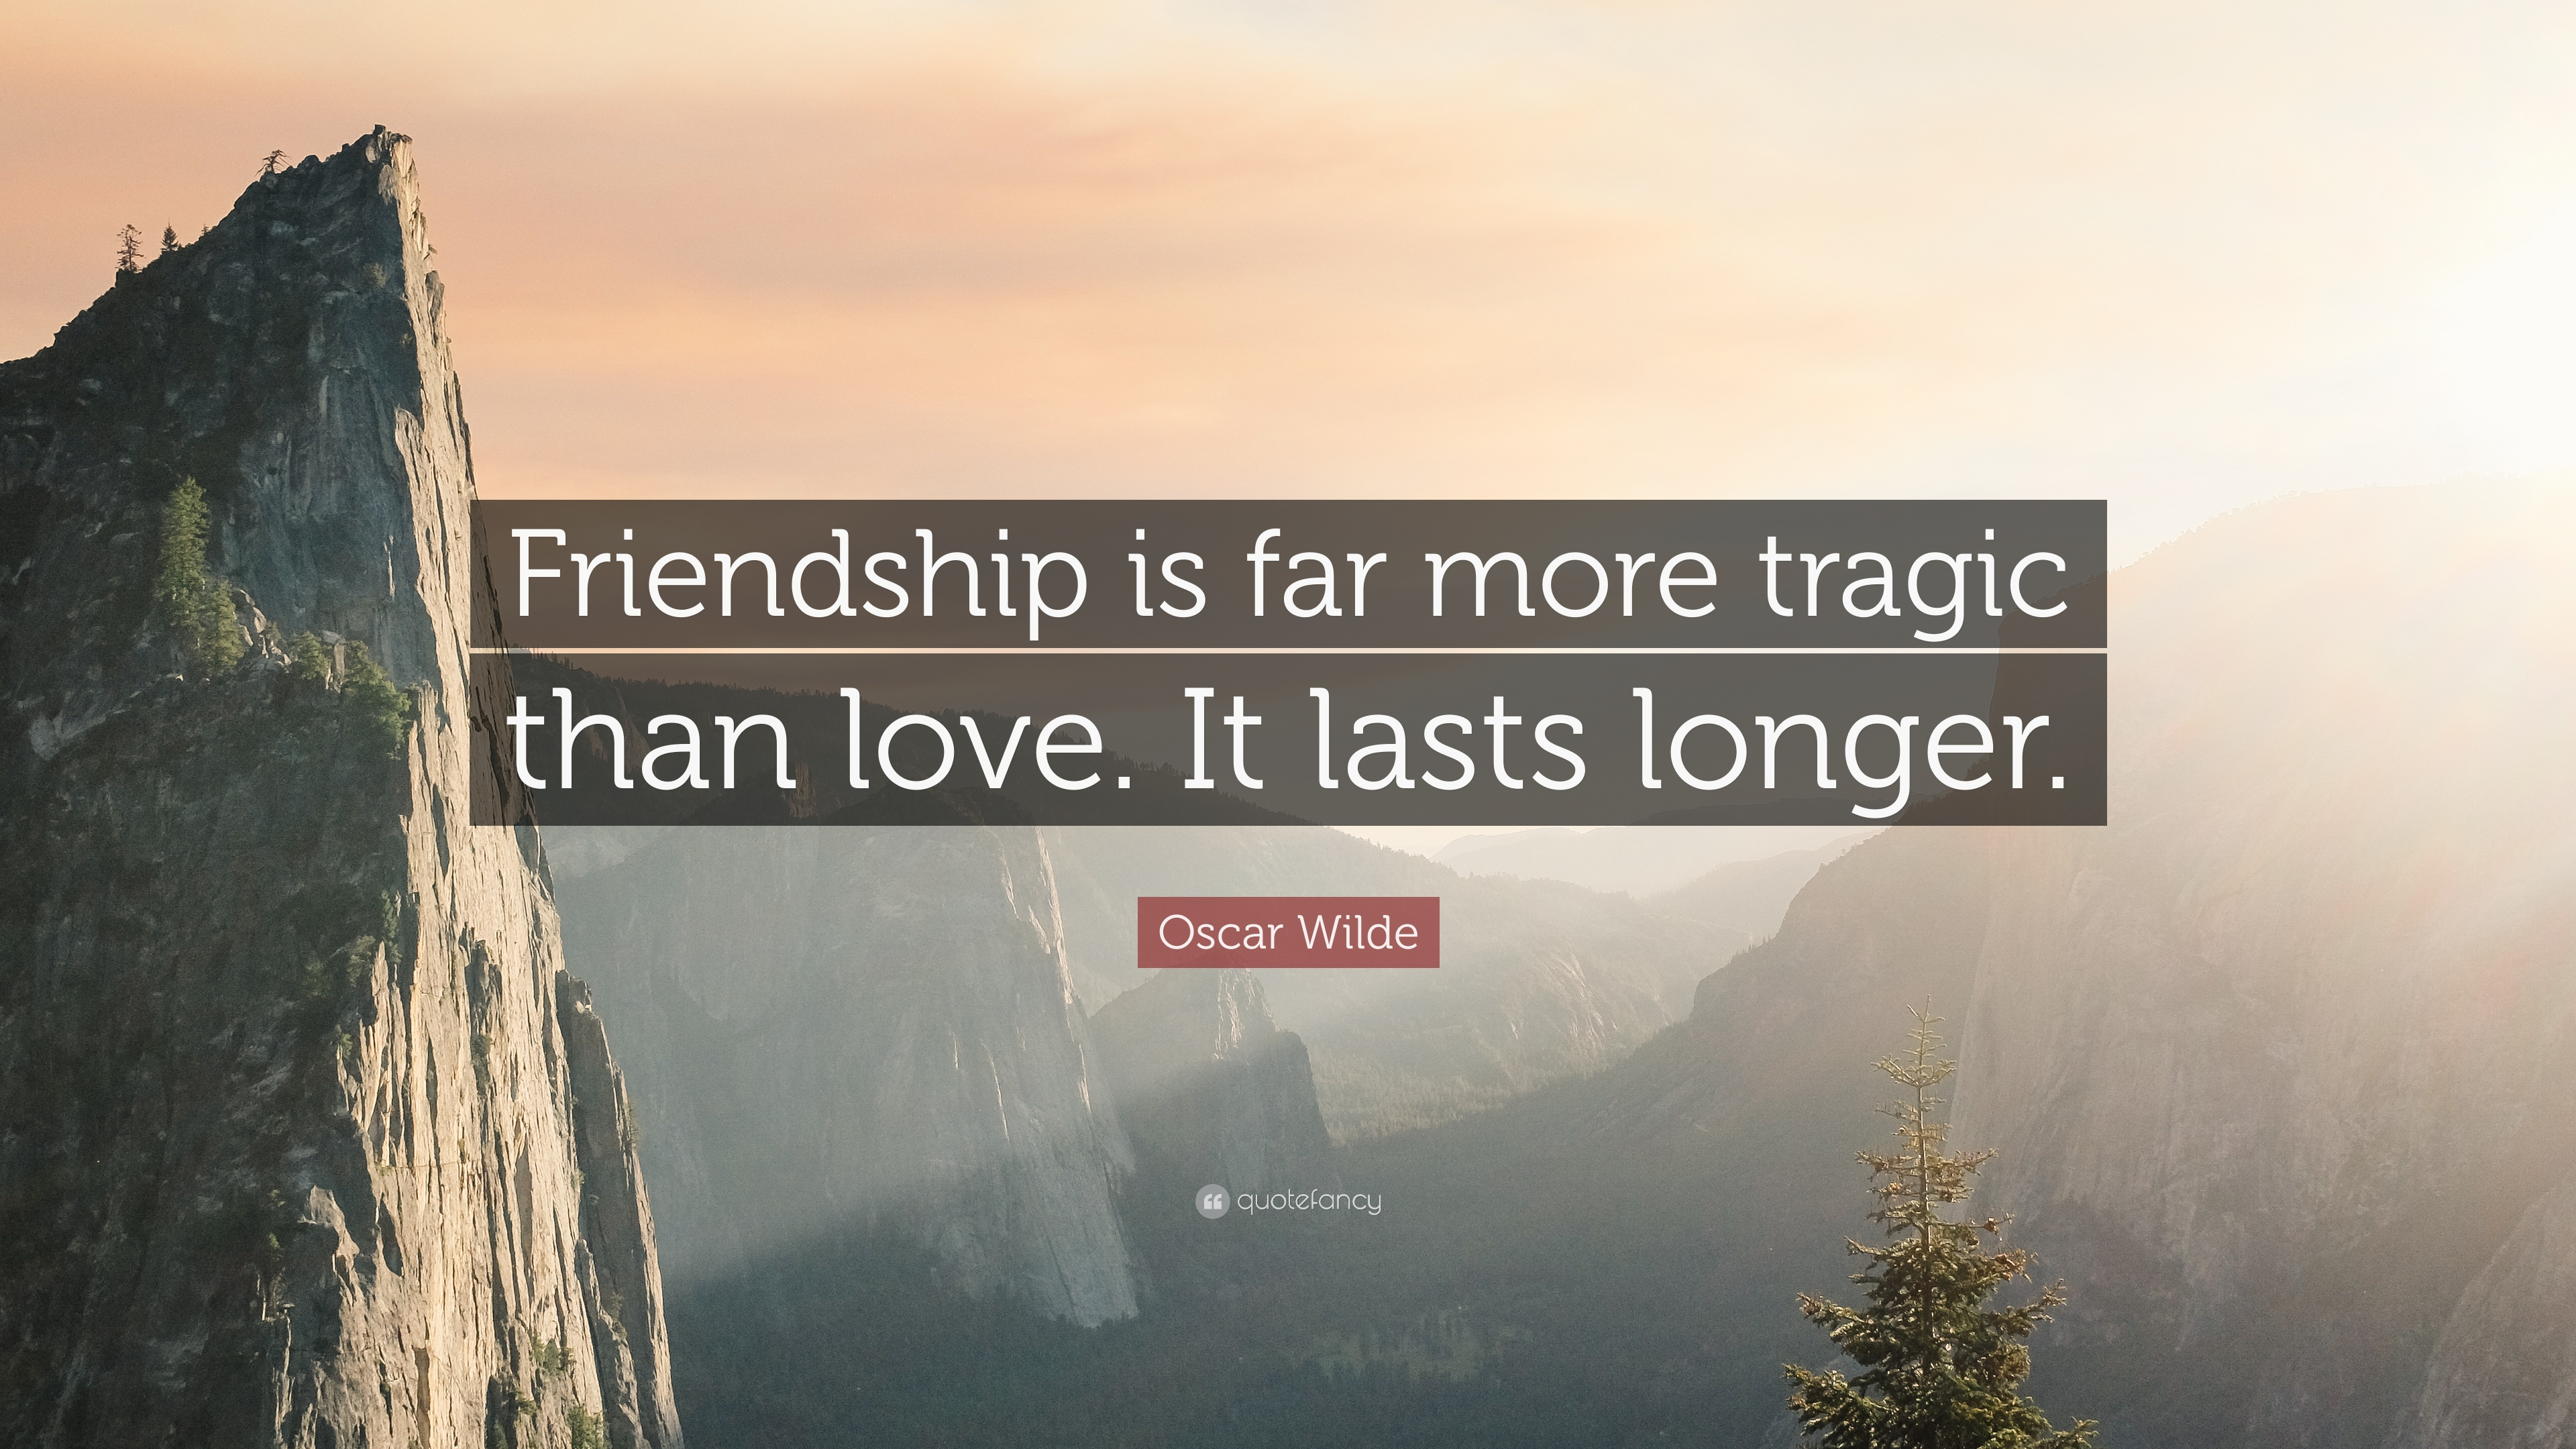 Oscar wilde quote friendship is far more tragic than love it oscar wilde quote friendship is far more tragic than love it lasts longer thecheapjerseys Choice Image